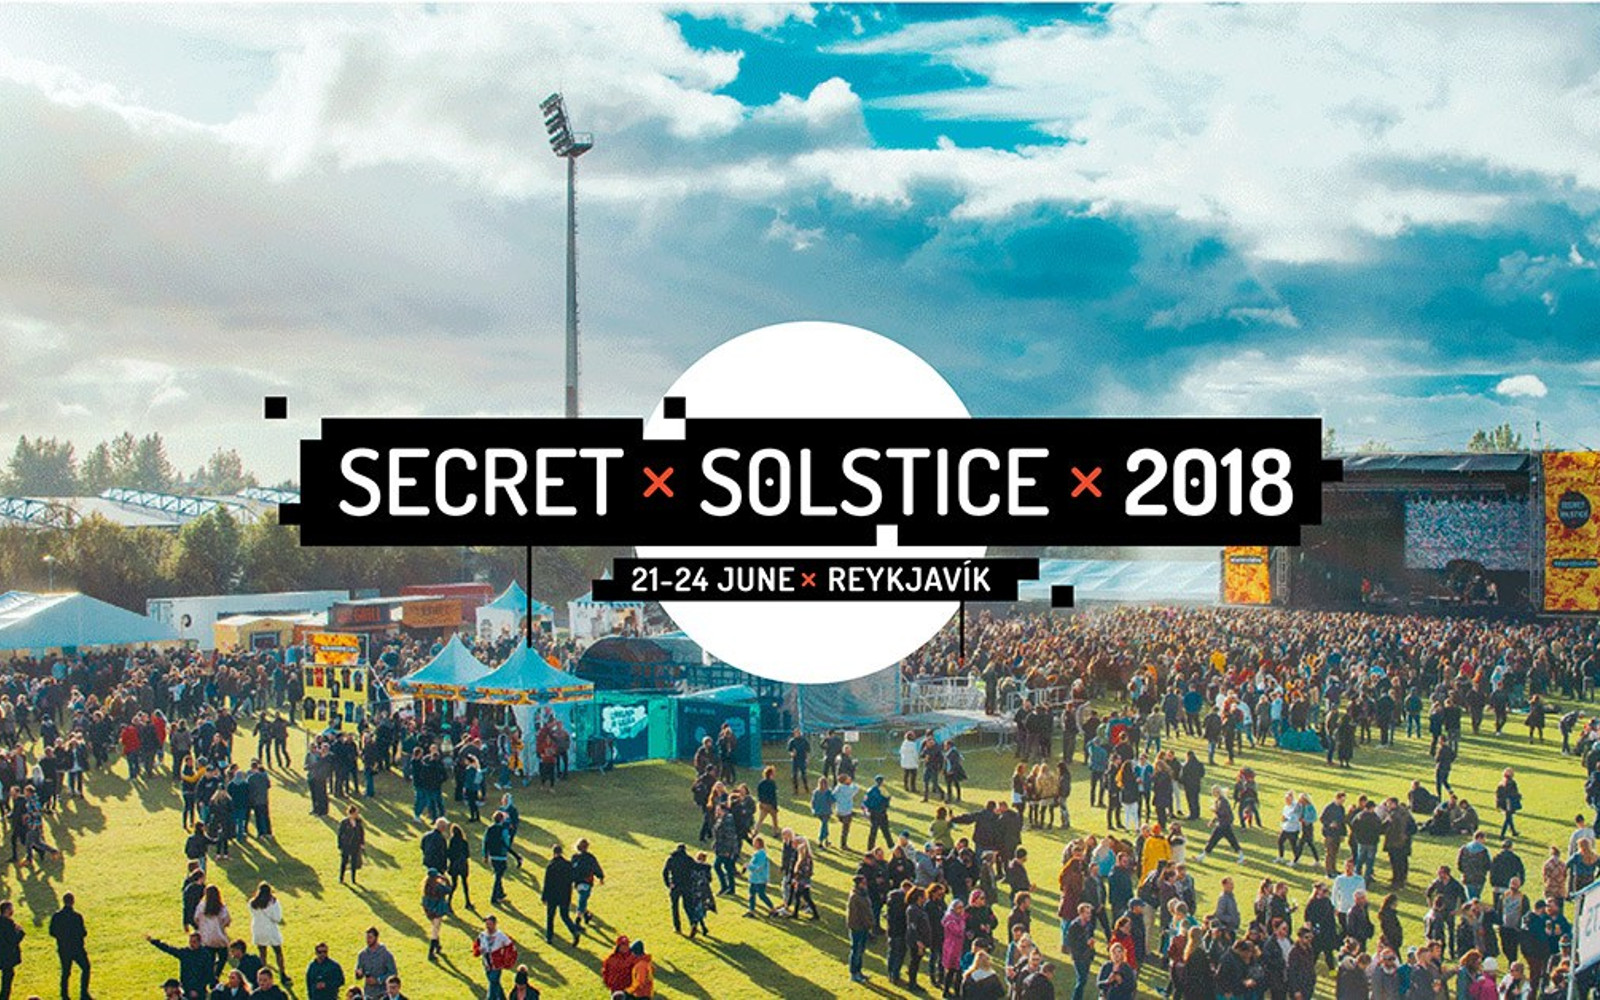 Secret Solstice: a história do ingresso de festival mais caro do mundo